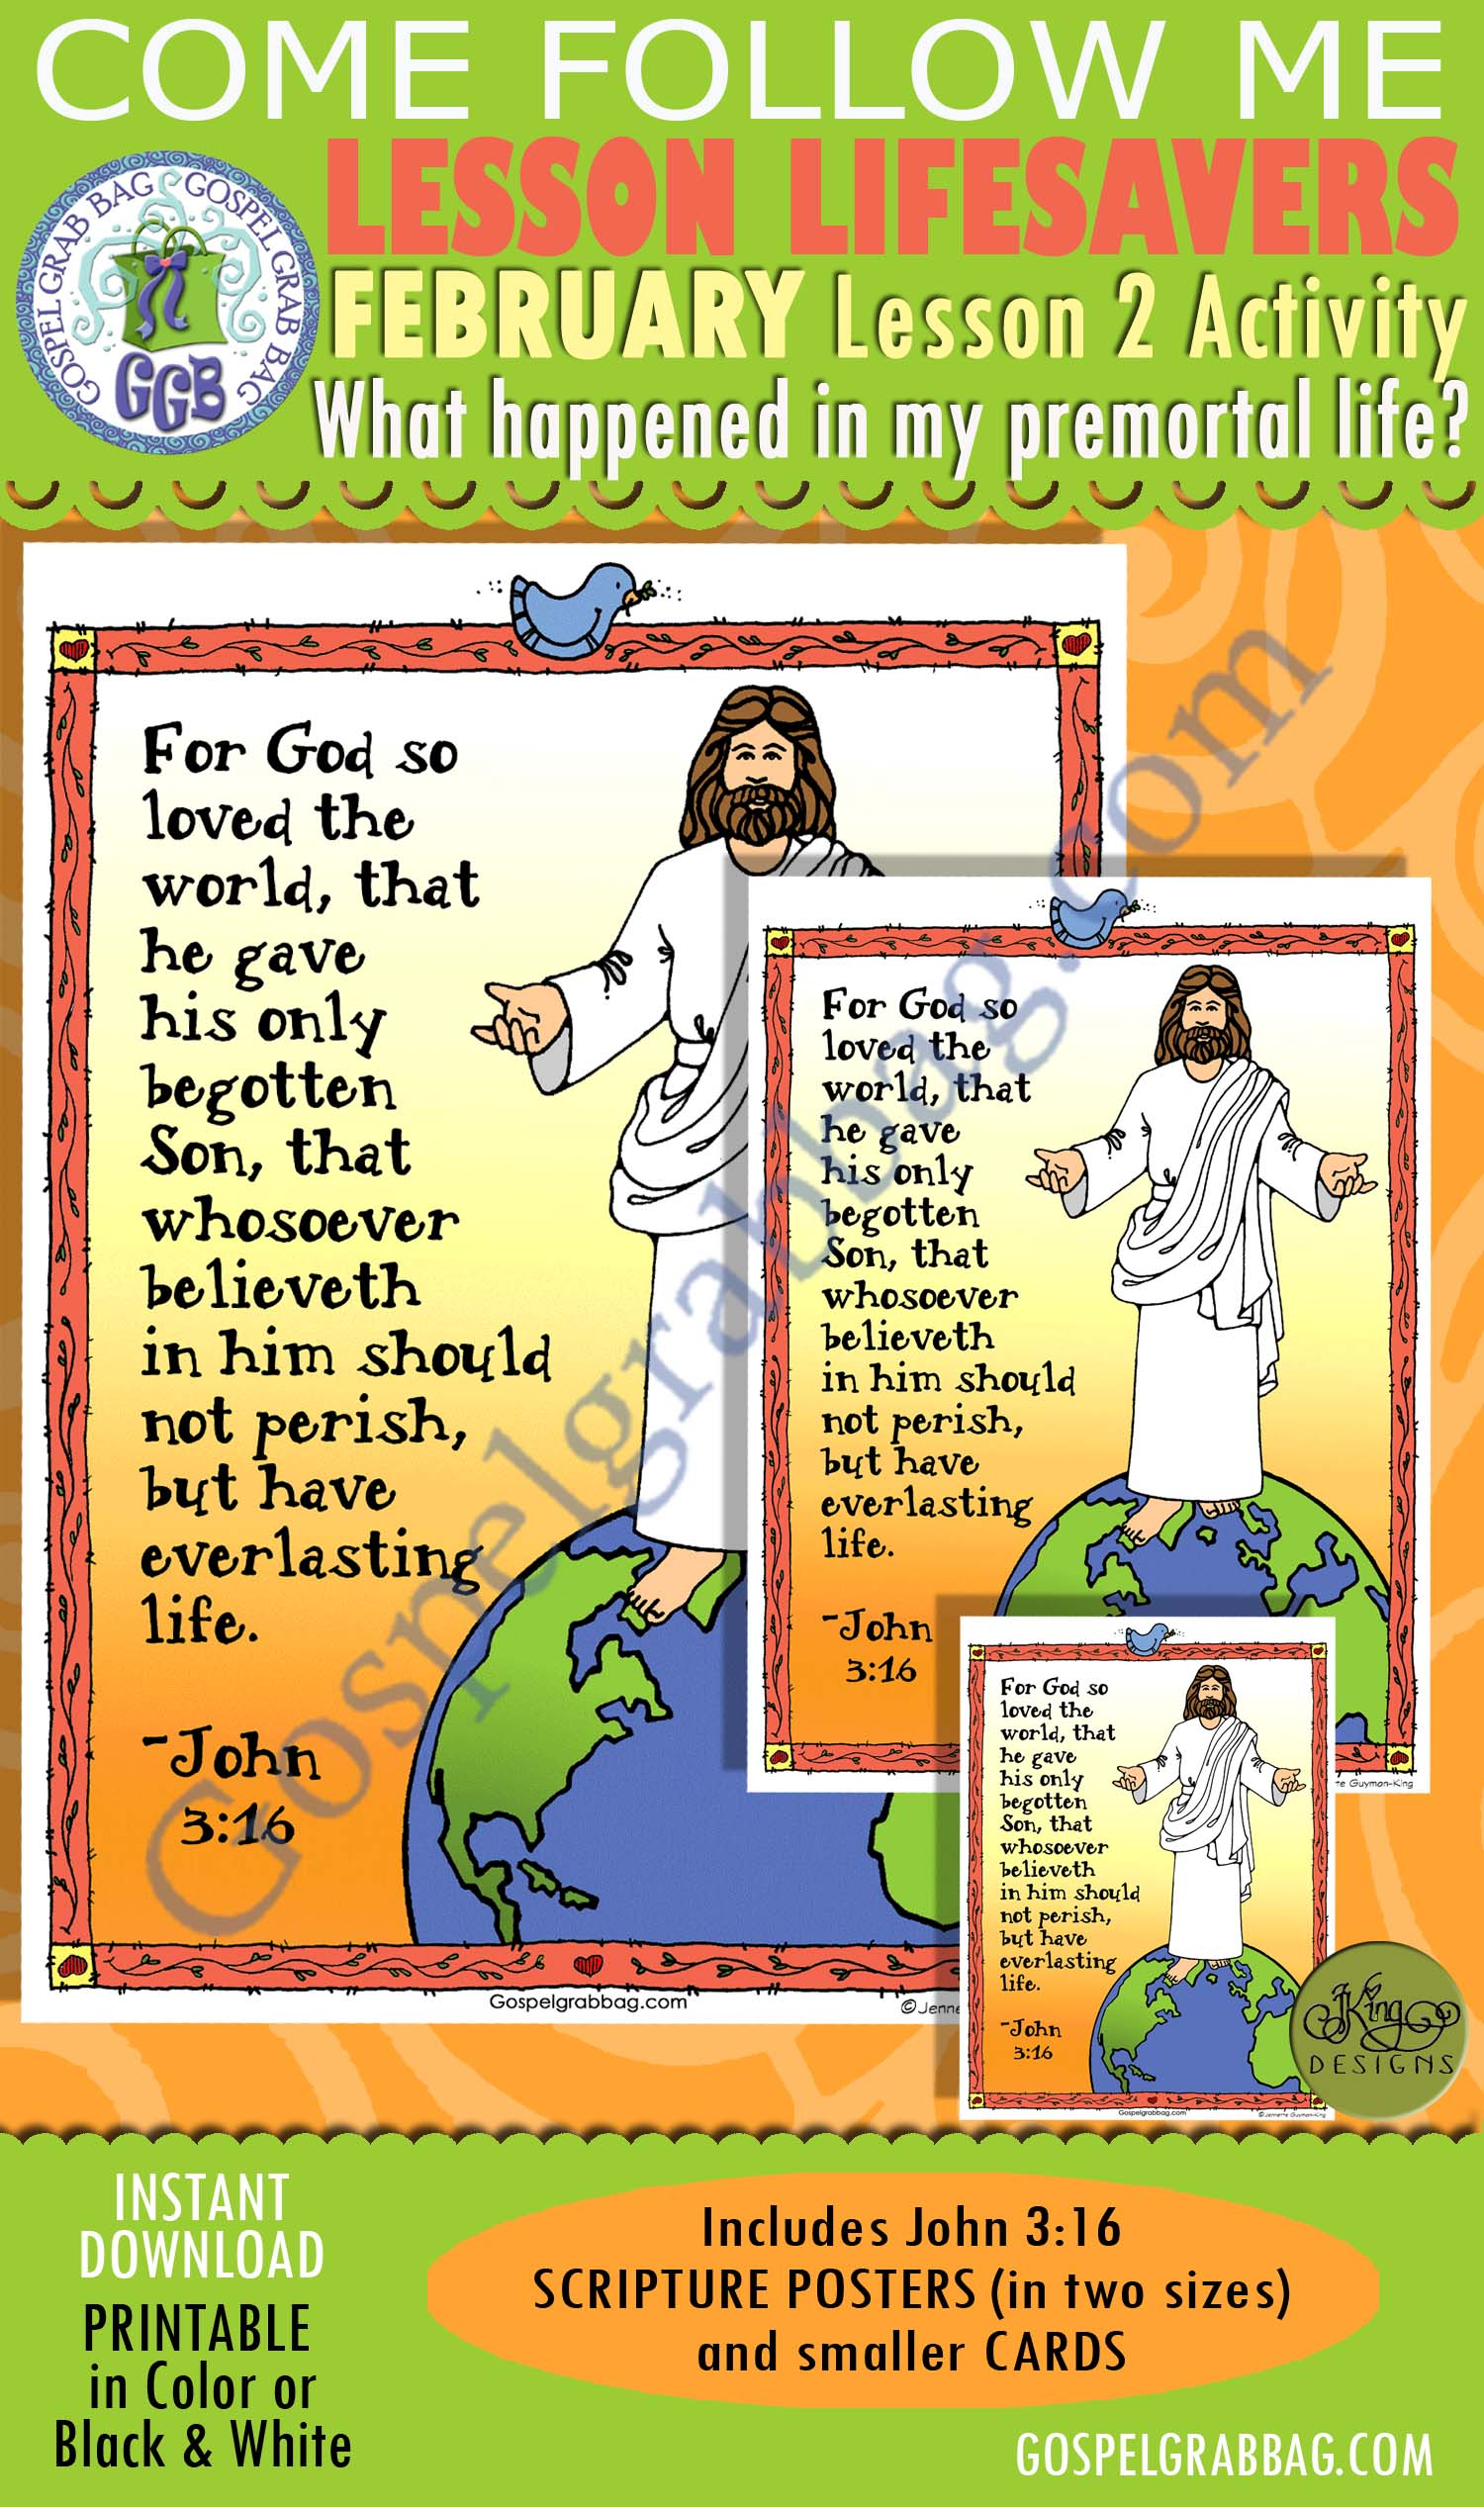 "$1.75 February Lesson 2 - Come Follow Me ""What happened in my premortal life?"" ACTIVITY: John 3:16 Scripture Posters & Cards"